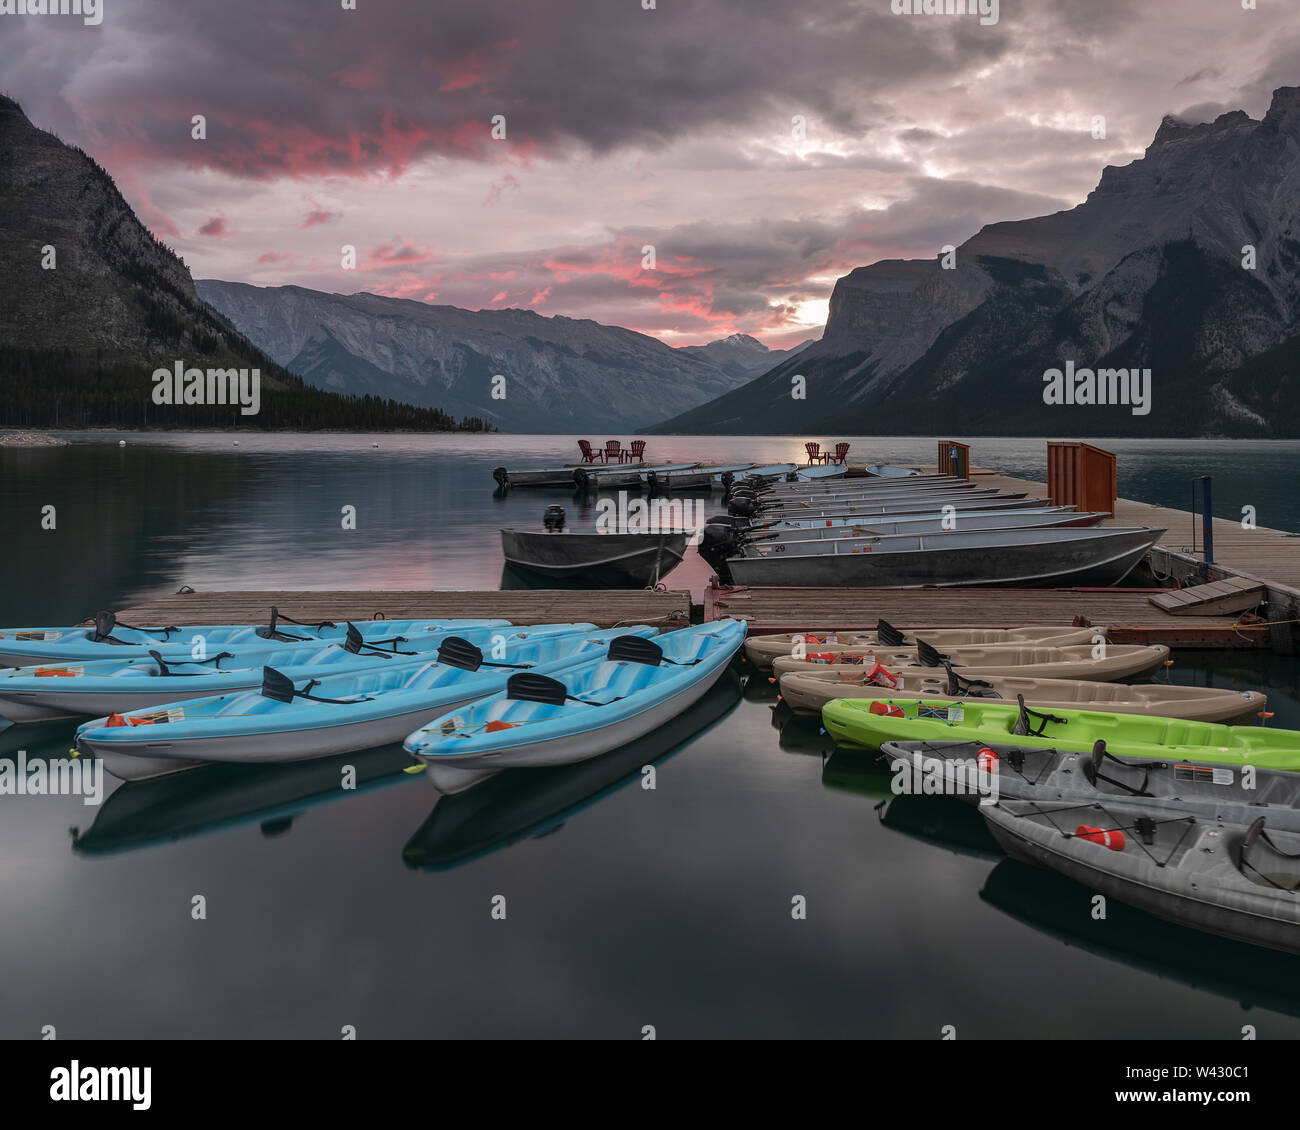 Sunrise at Lake Minnewanka - Stock Image